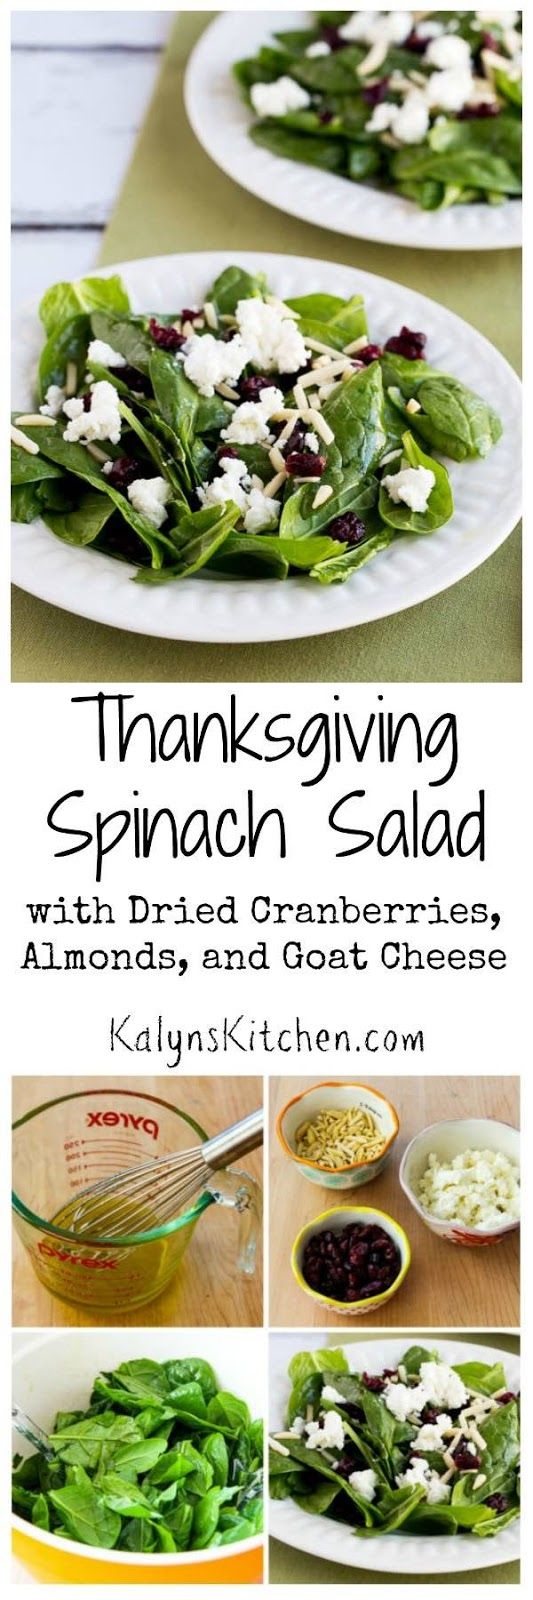 Thanksgiving Spinach Salad with Dried Cranberries, Almonds, and Goat Cheese; I've been making this holiday salad for years. You can also omit cranberries for a low-carb version if you prefer. [found on KalynsKitchen.com]